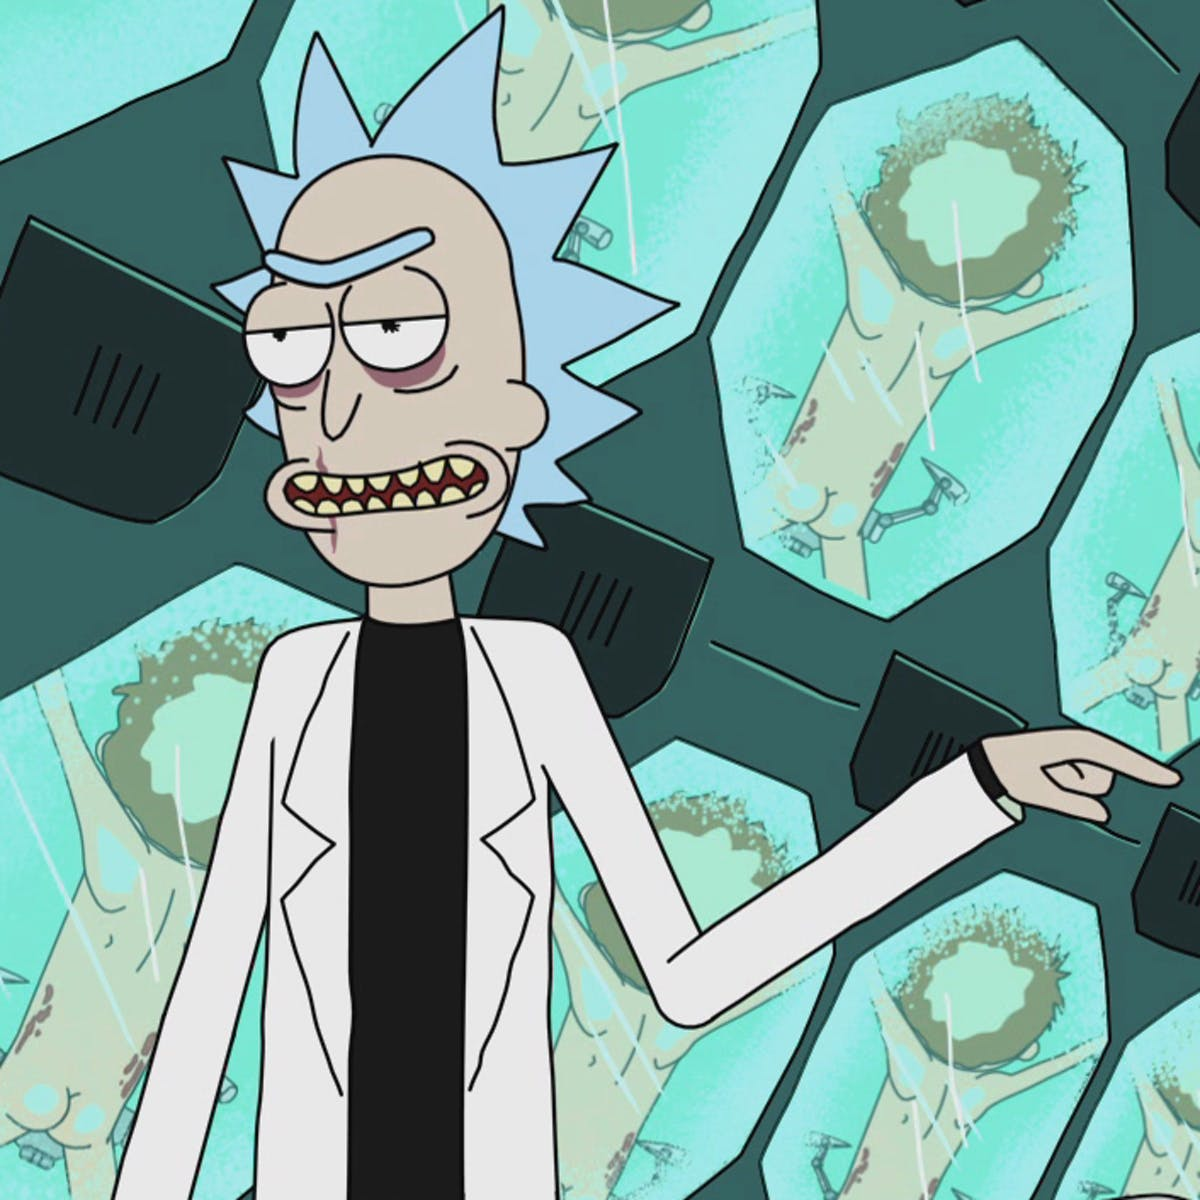 rick and morty season 4 episode 2 - photo #15